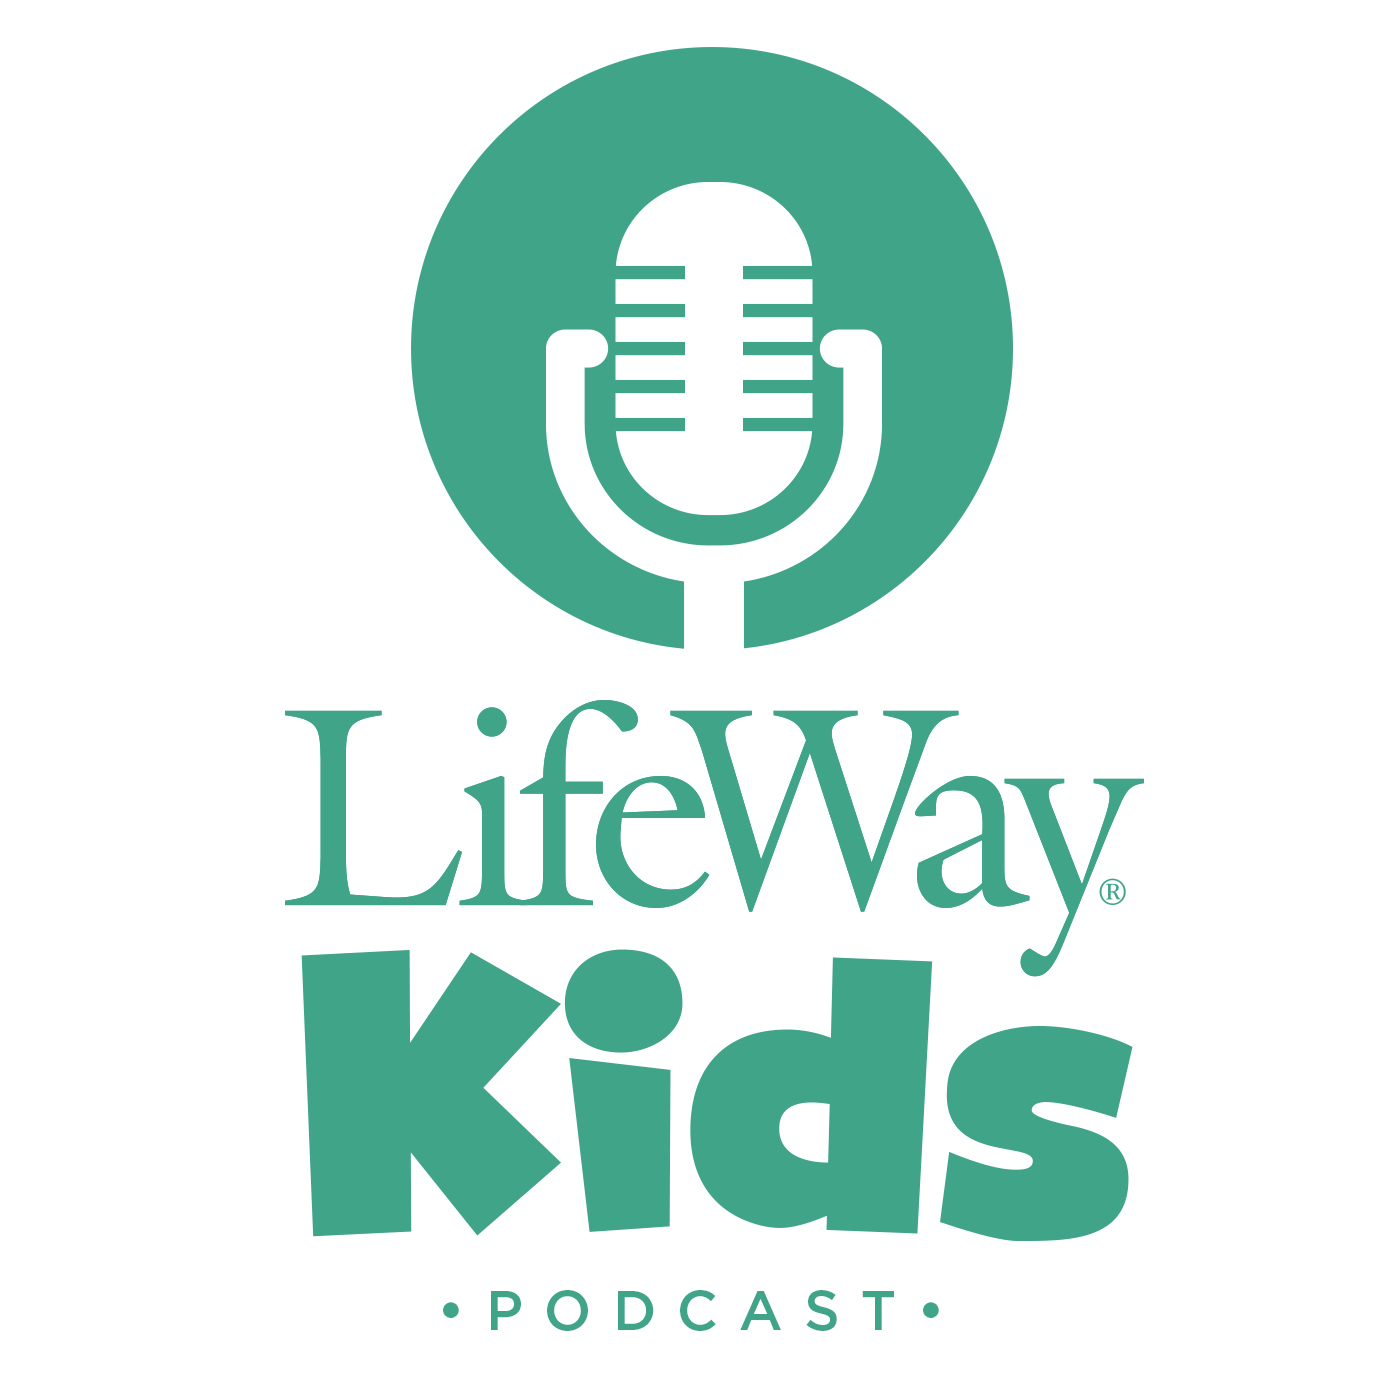 LifeWay Kids Podcast